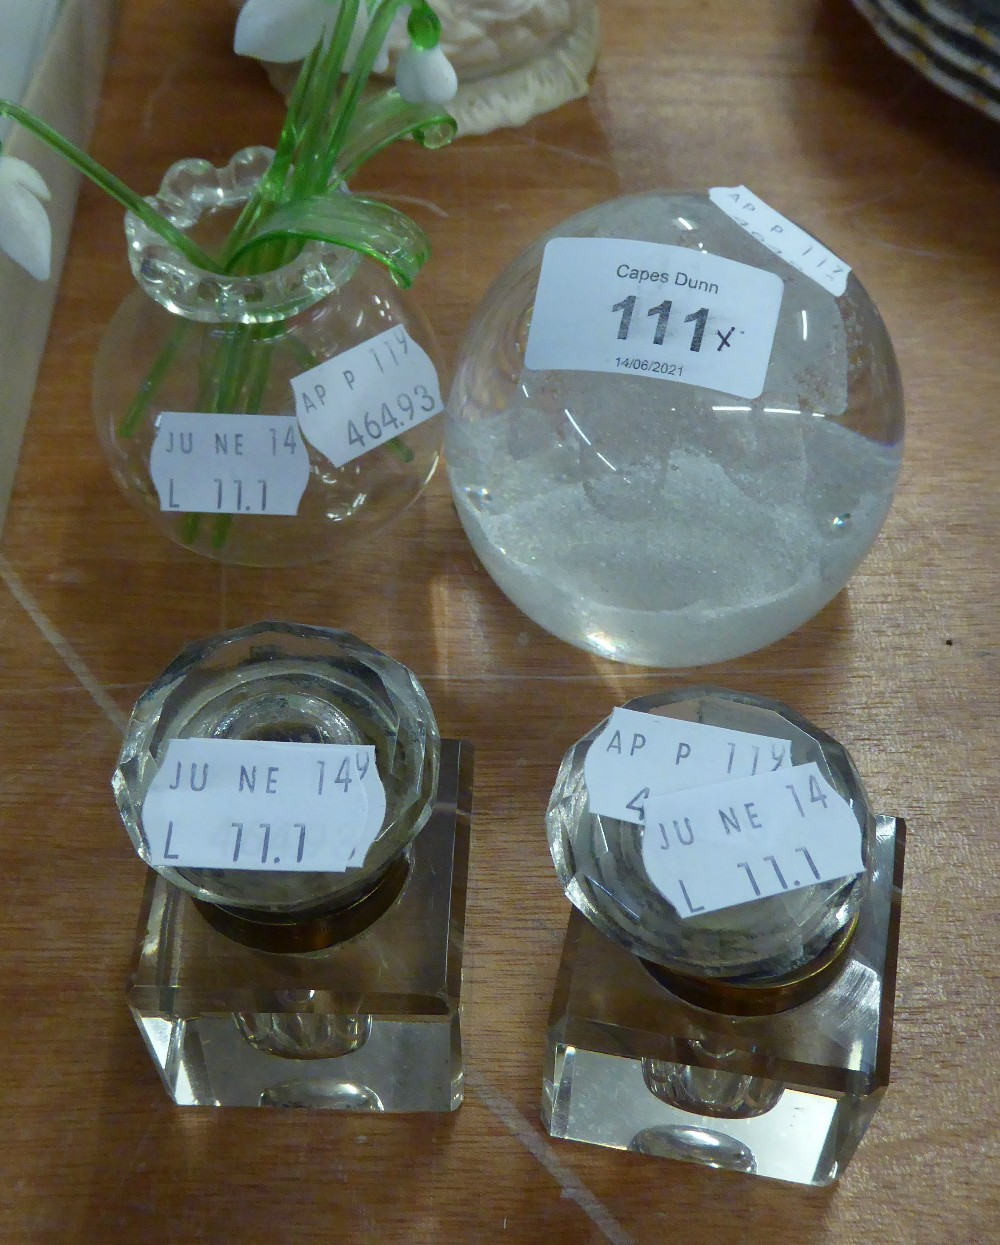 CAITHNESS GLASS PAPERWEIGHT; A PAIR OF GLASS SQUARE INKWELLS WITH HINGED LIDS AND A GLASS VASE